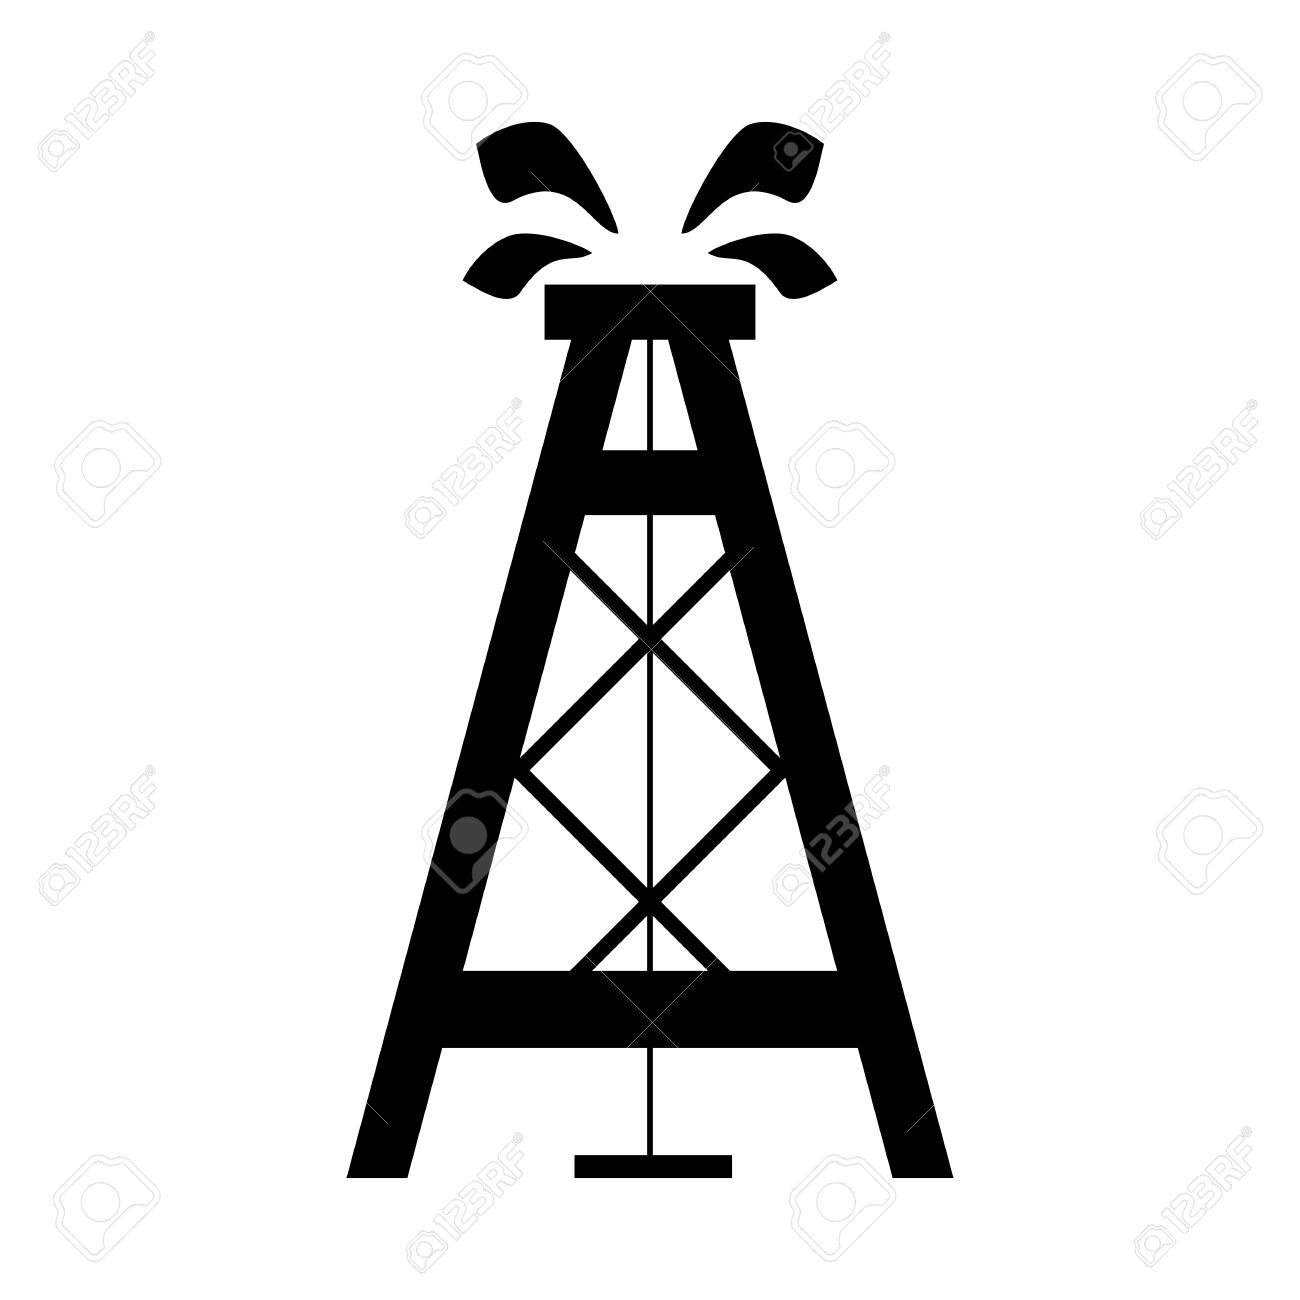 oil rig vector icon royalty free cliparts vectors and stock rh 123rf com offshore rig clipart oil rig clipart free